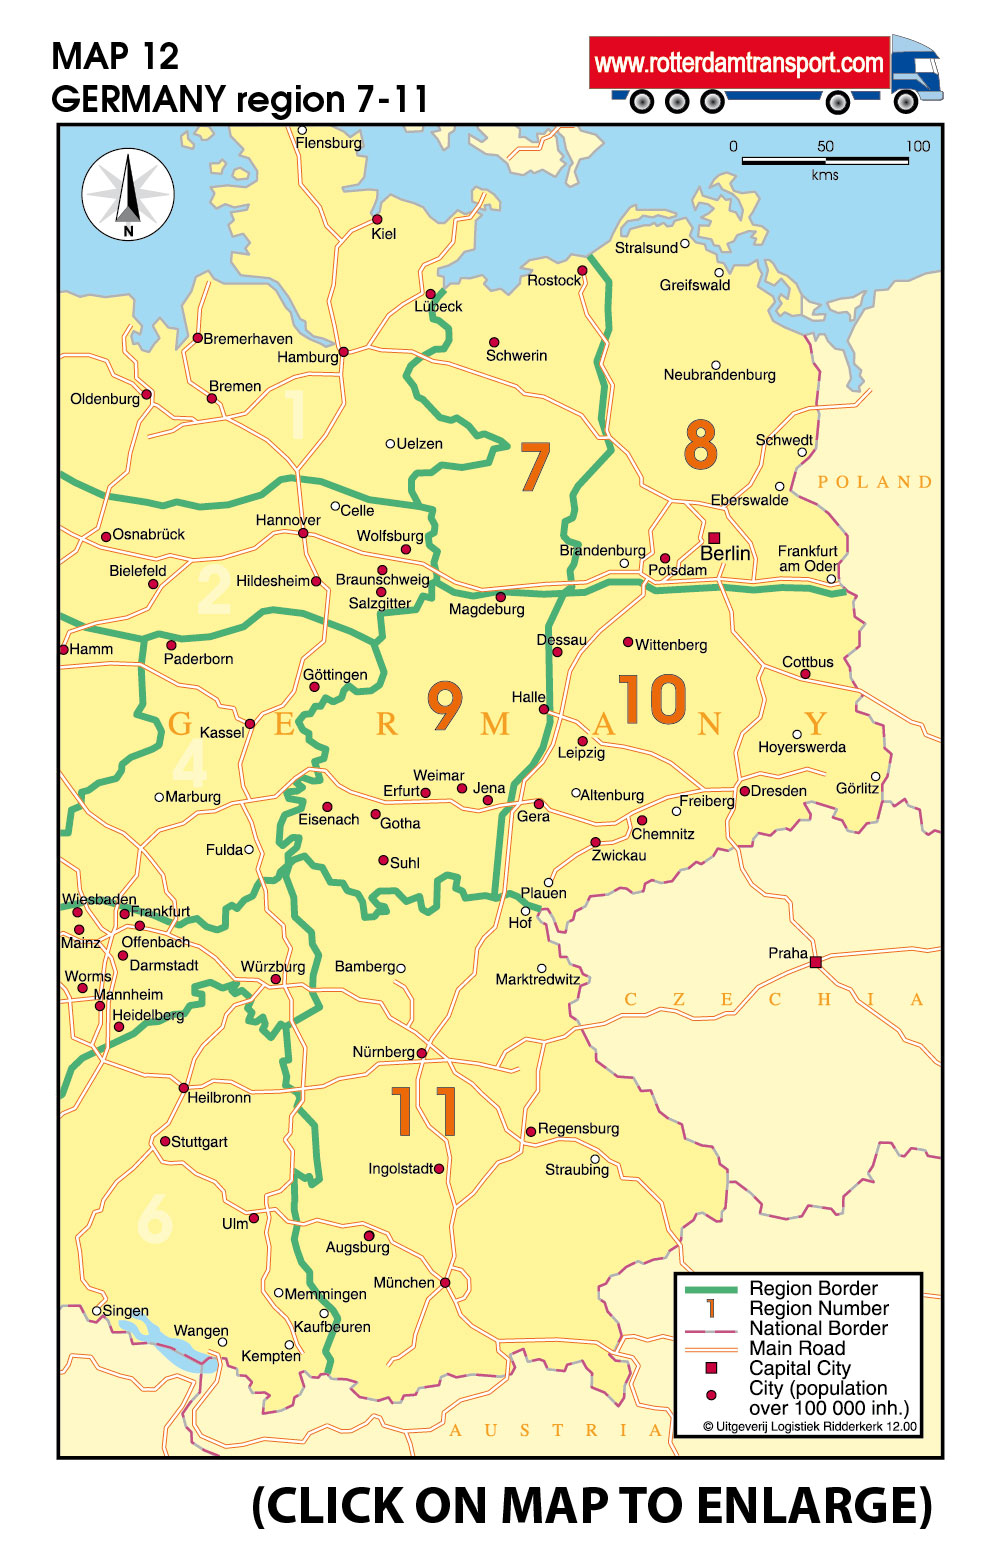 wwwrotterdamtransportcom maps groupage by road